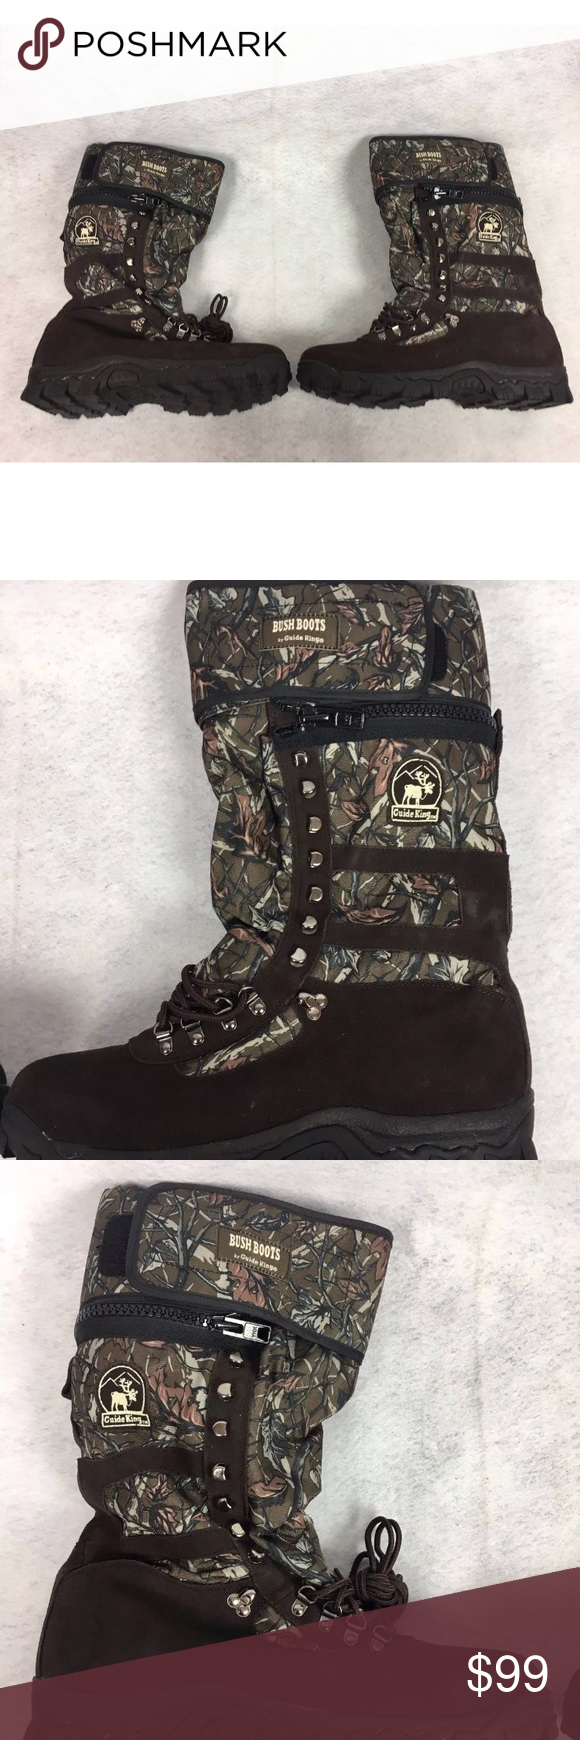 Brand new bush boots by guide king camo hunting hip wader boots.